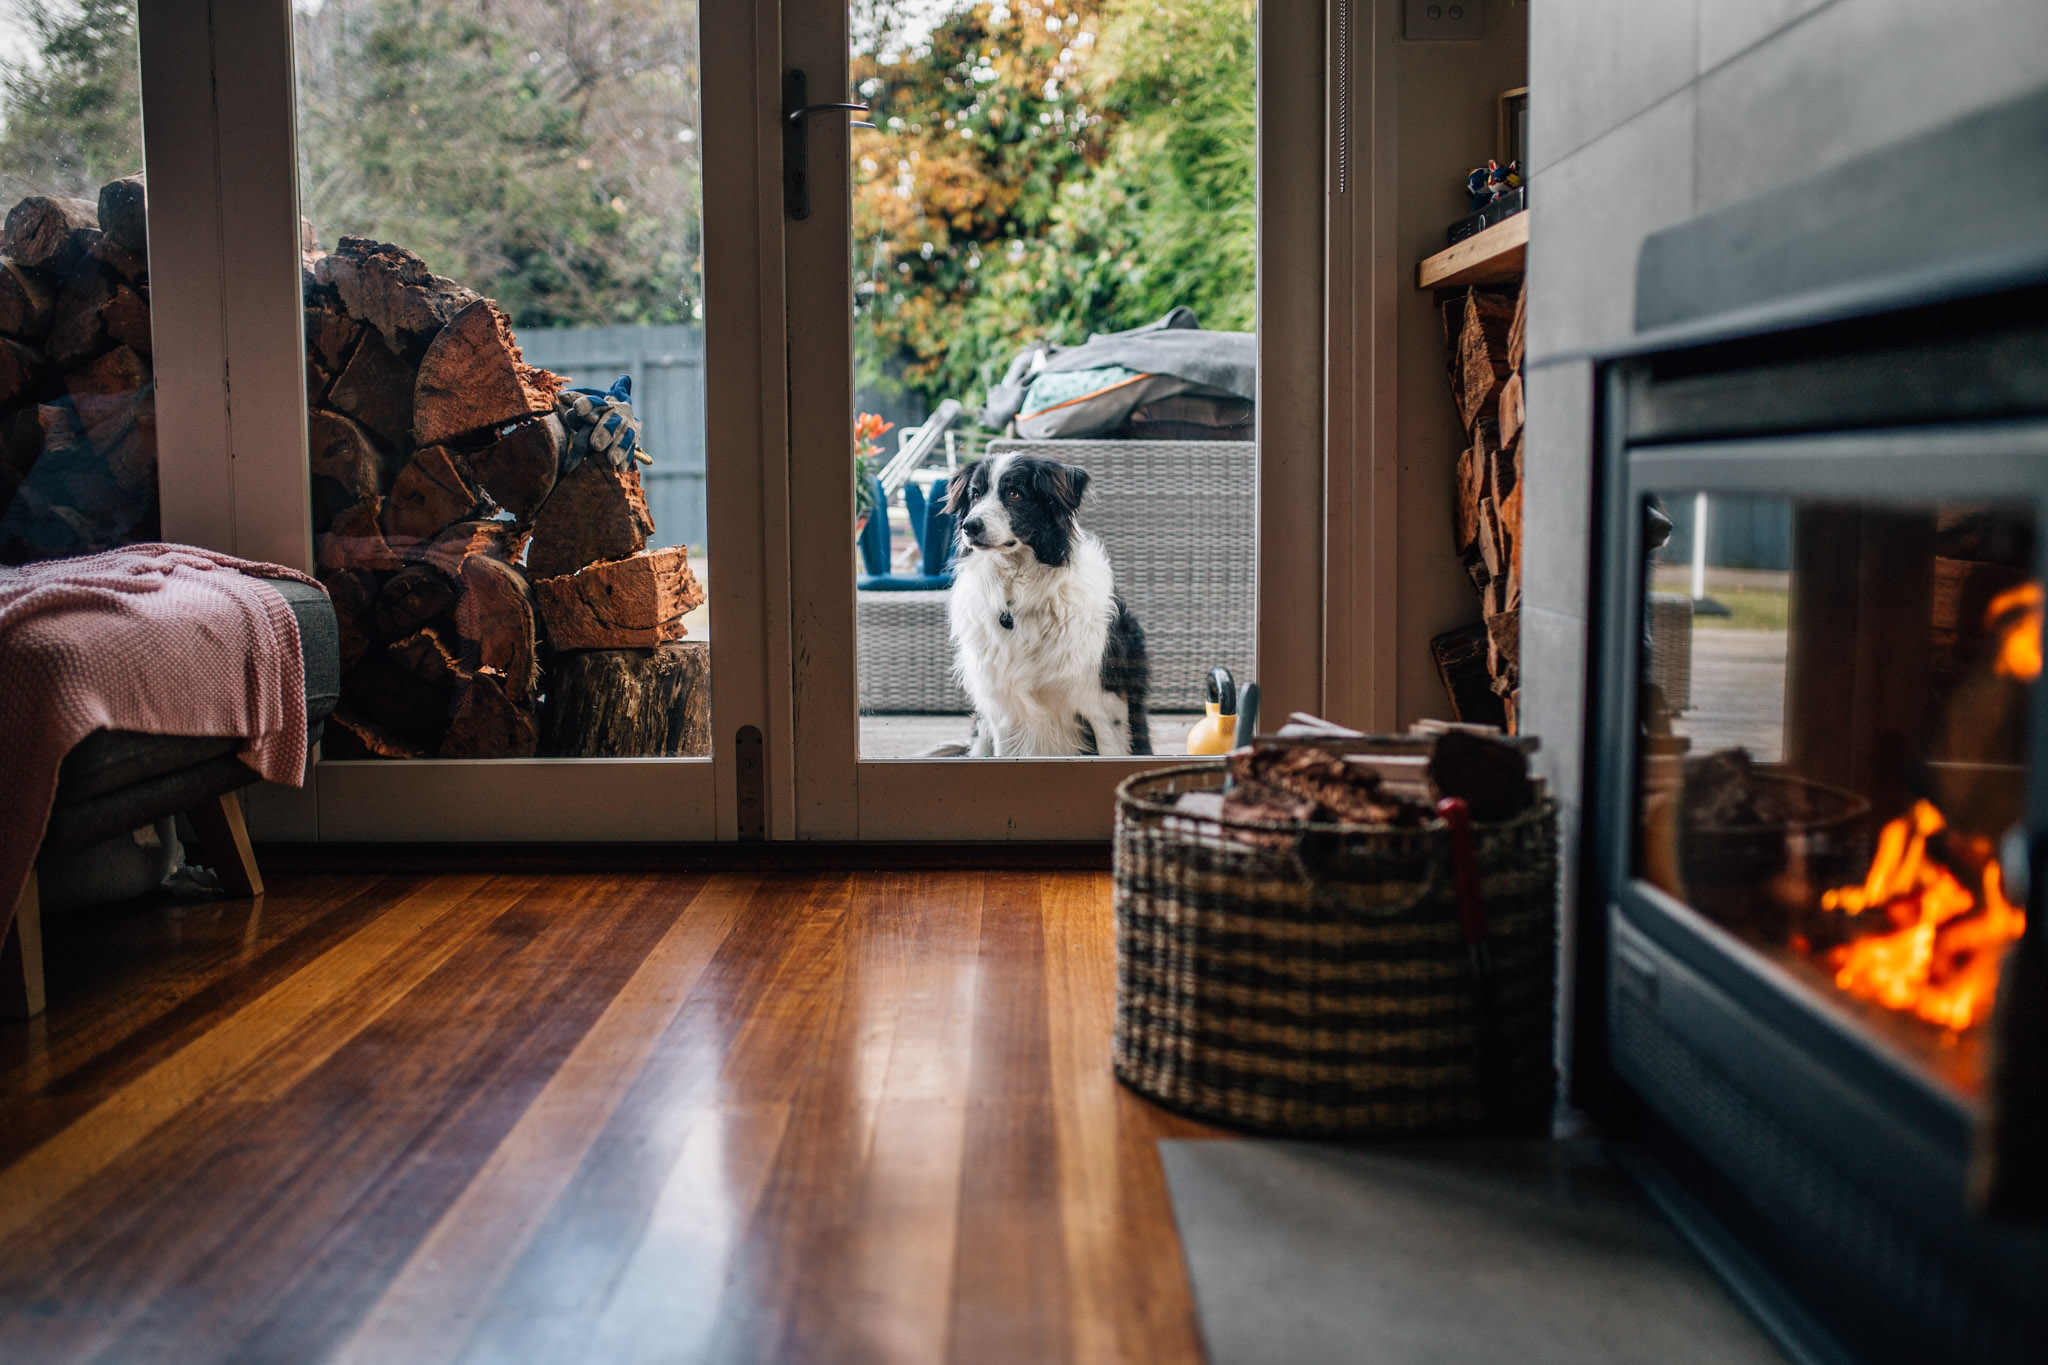 Dog outside glass door with fire.